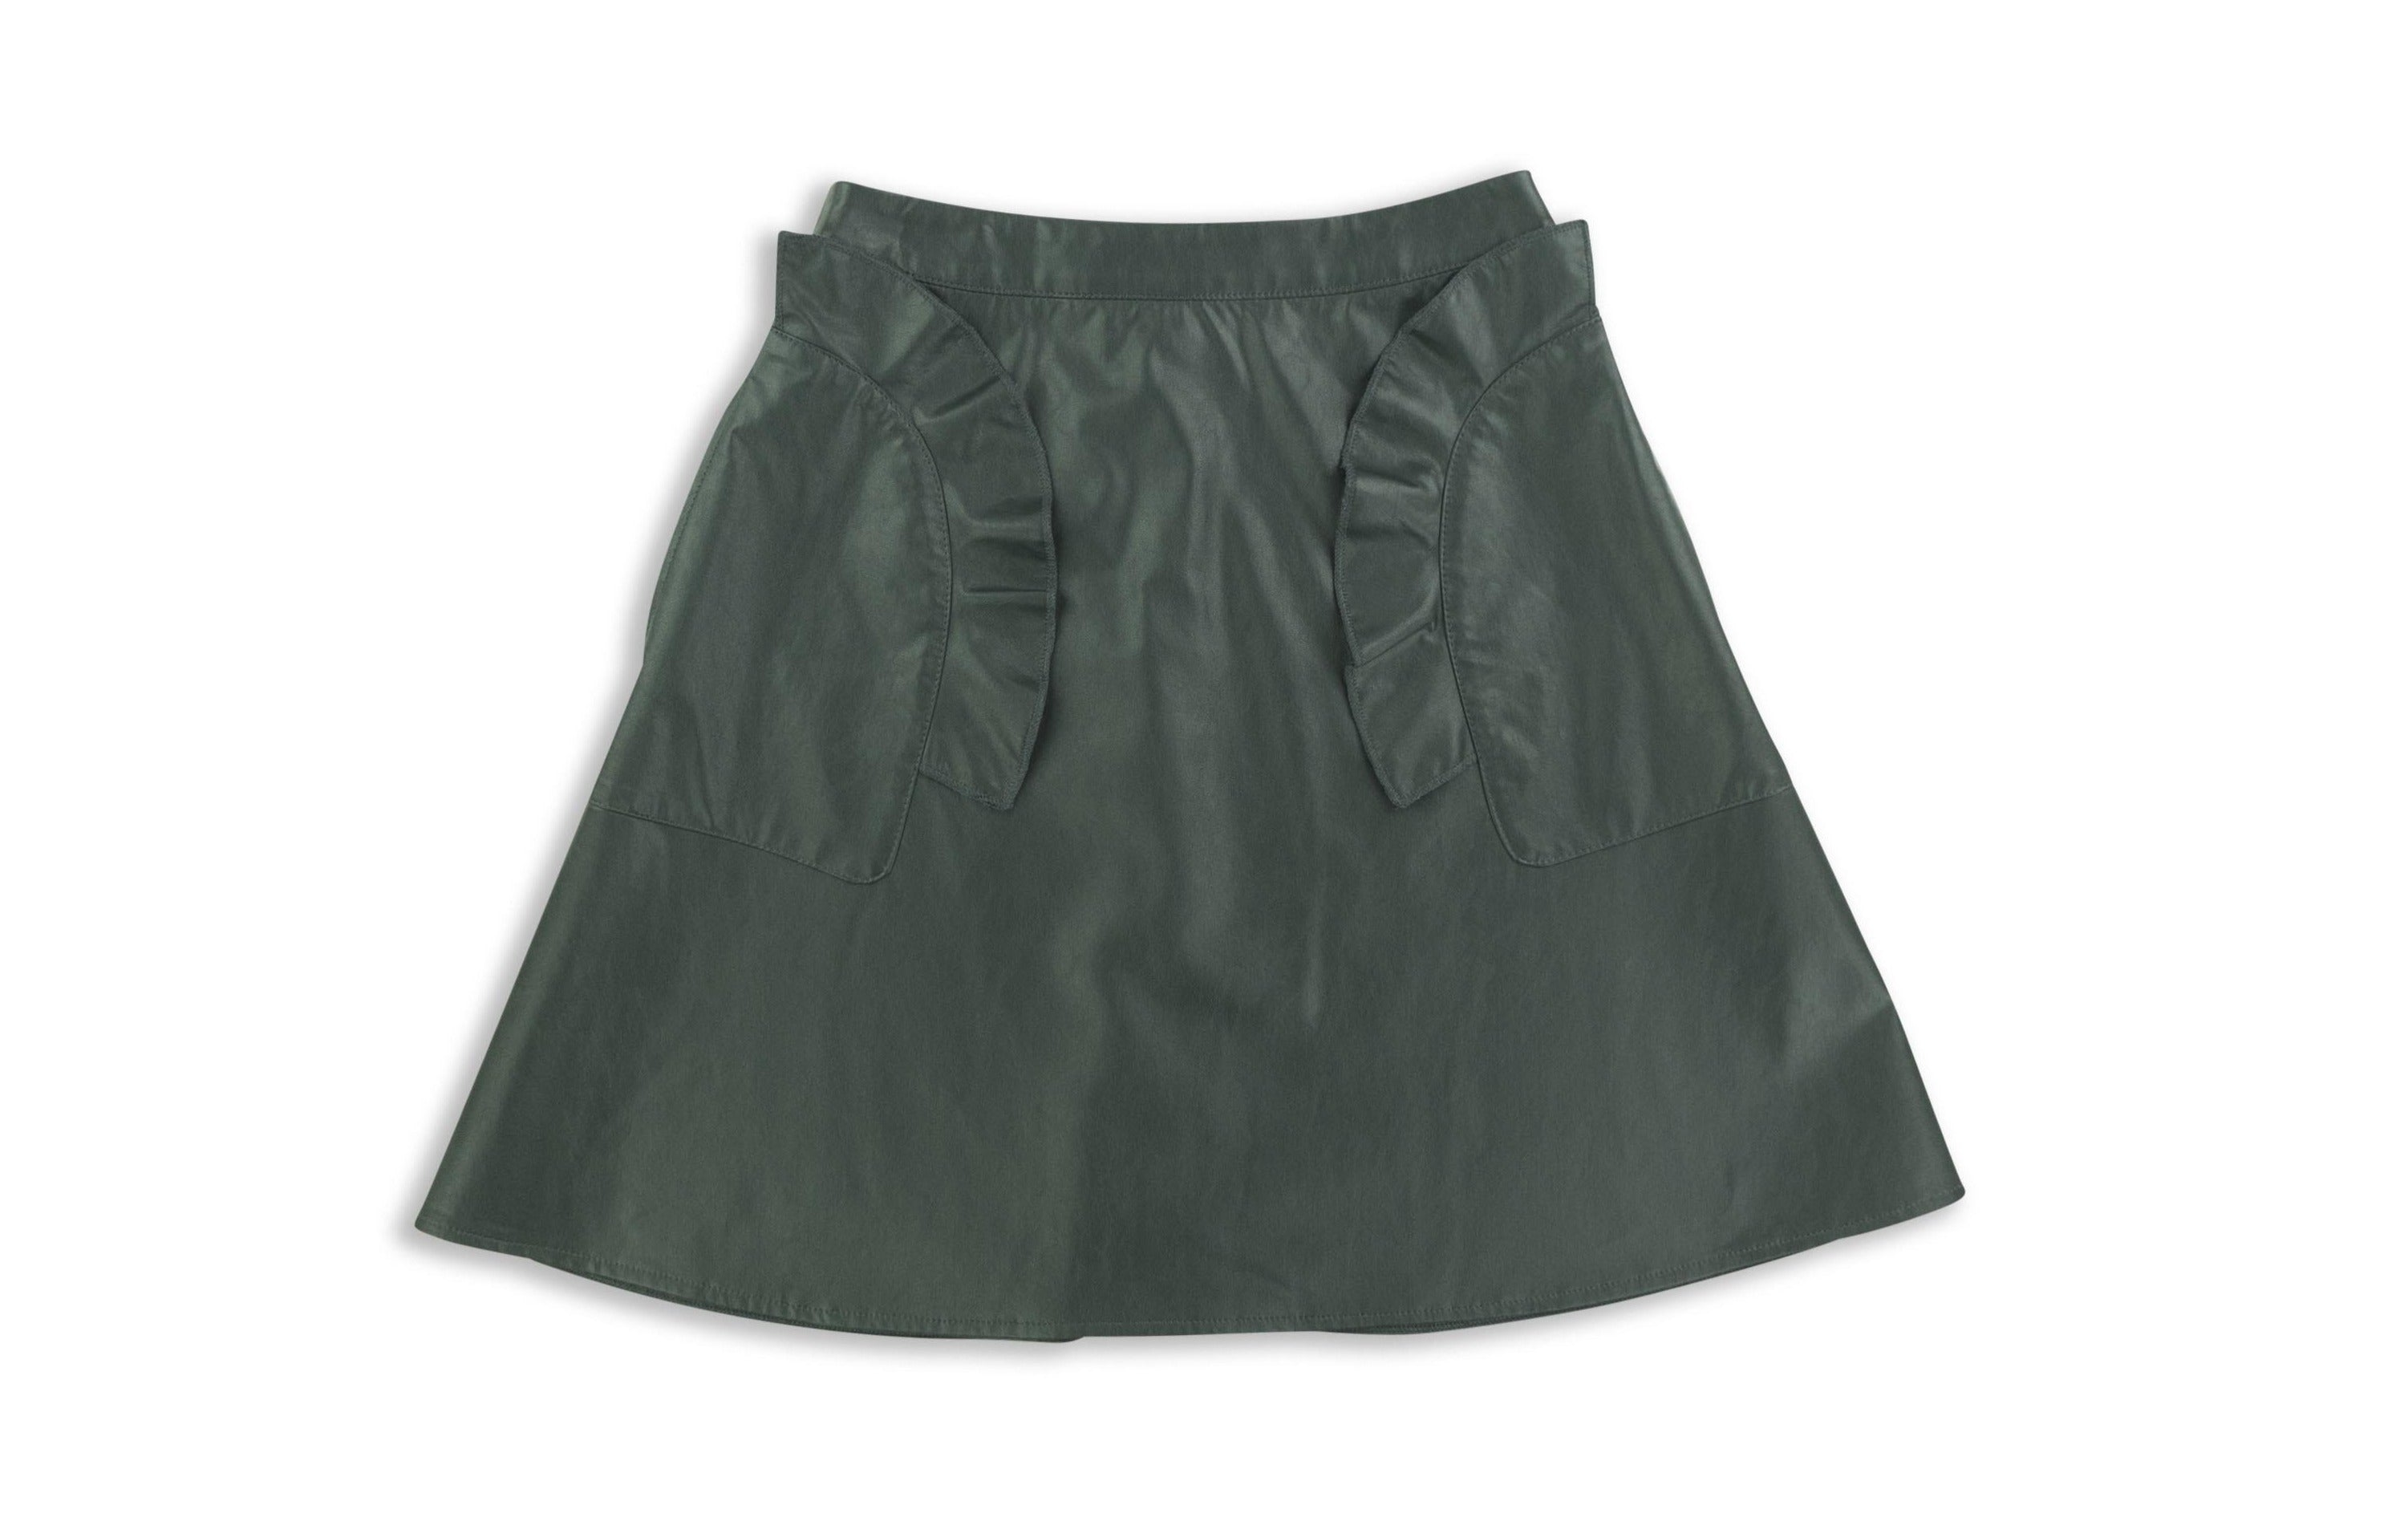 Miss L.Ray Teen Mattea Ruffle Skirt